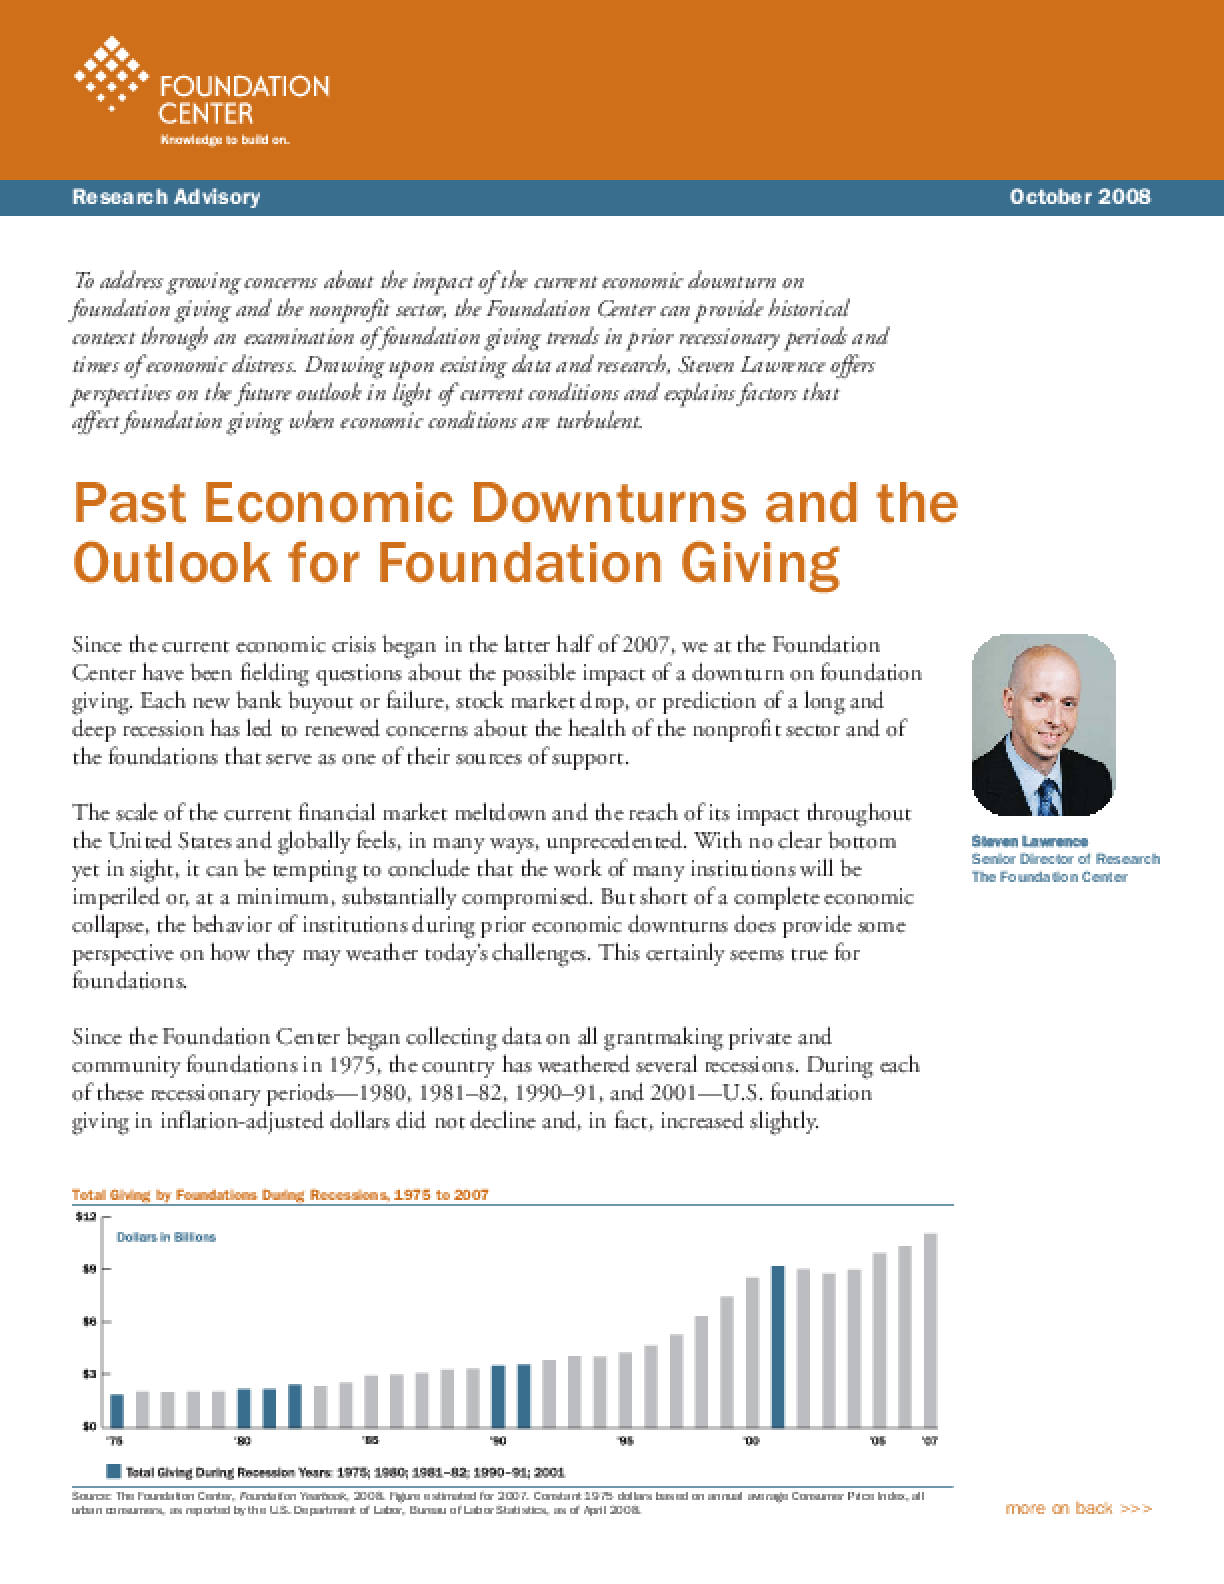 Past Economic Downturns and the Outlook for Foundation Giving